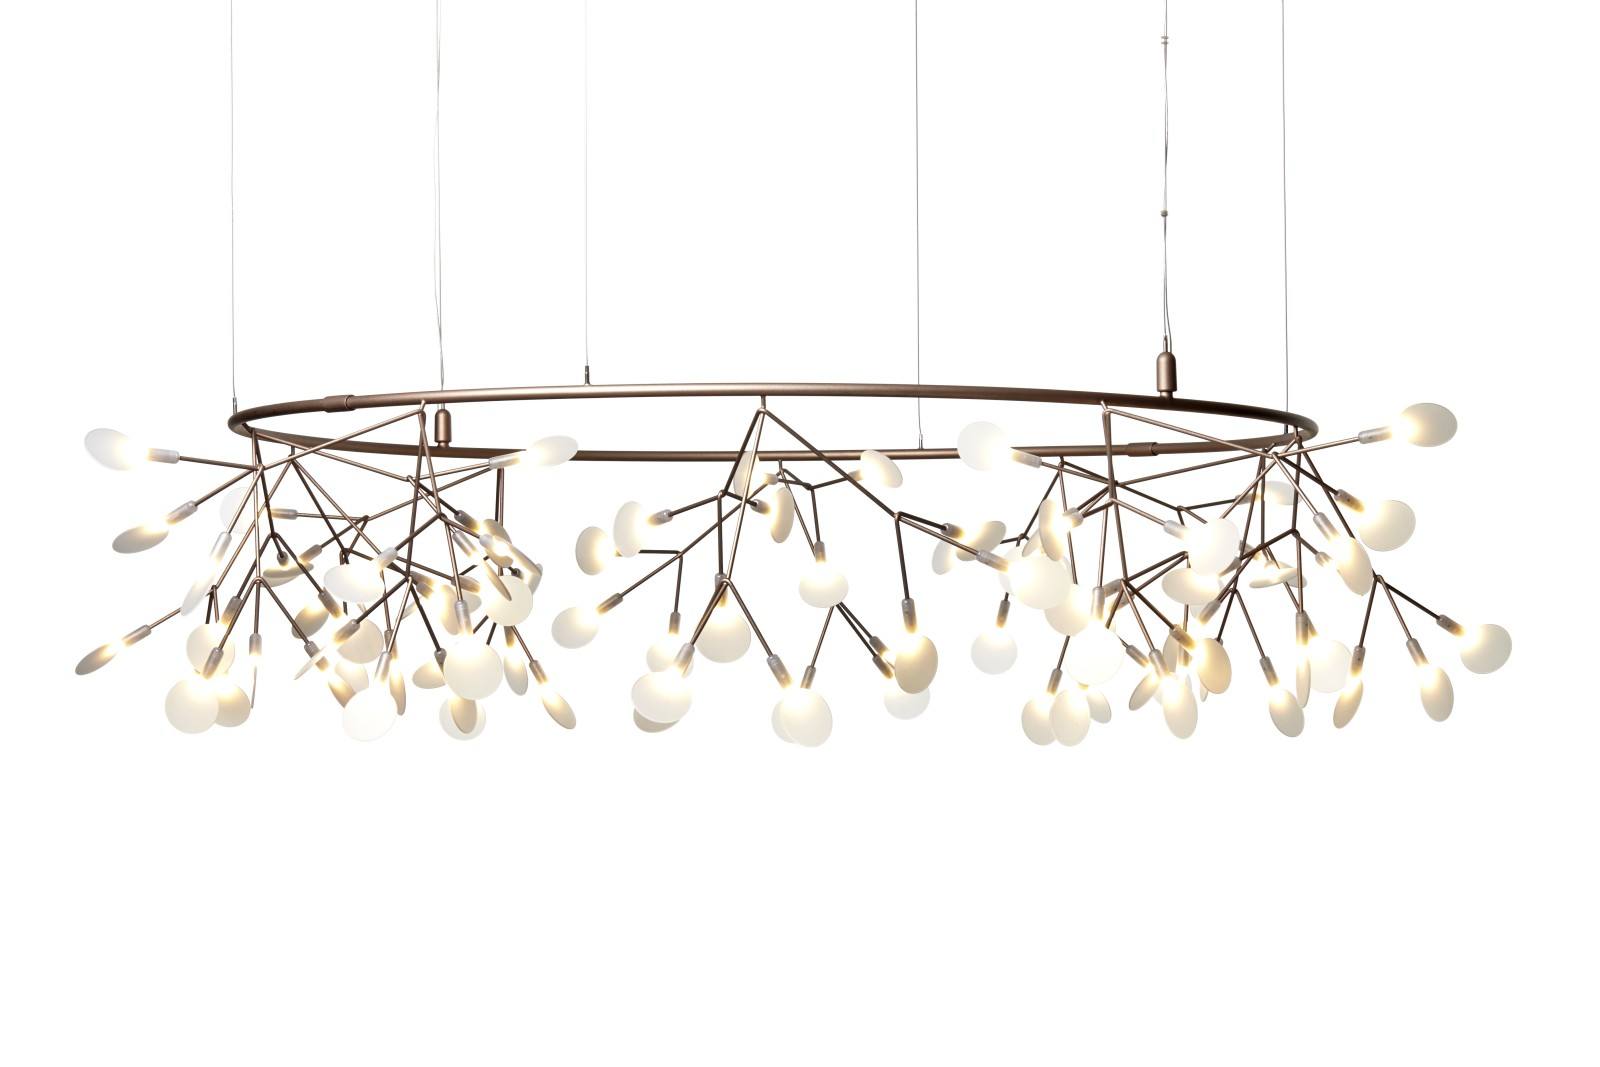 Heracleum Small Big O Pendant Light Copper, 4 m Cable